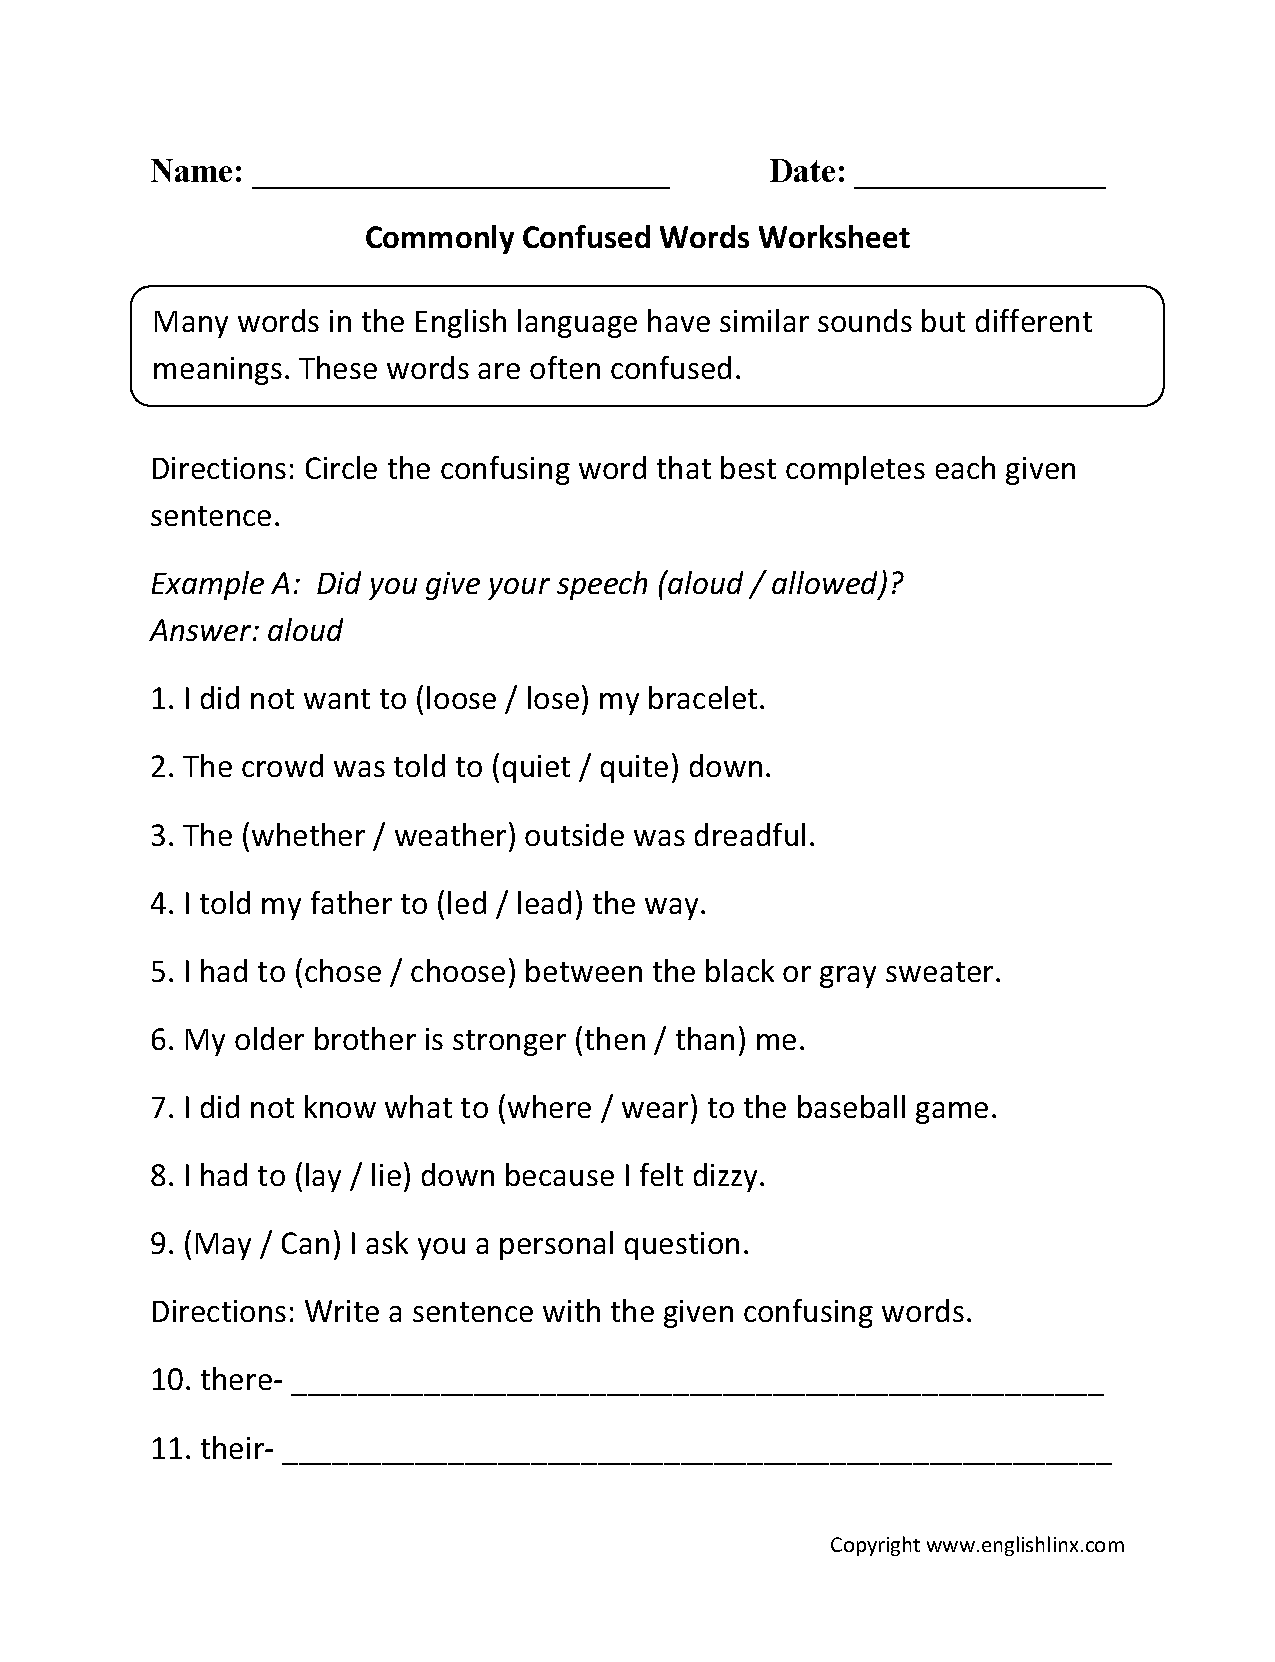 Worksheets Grammer Worksheets grammar worksheets word usage worksheets